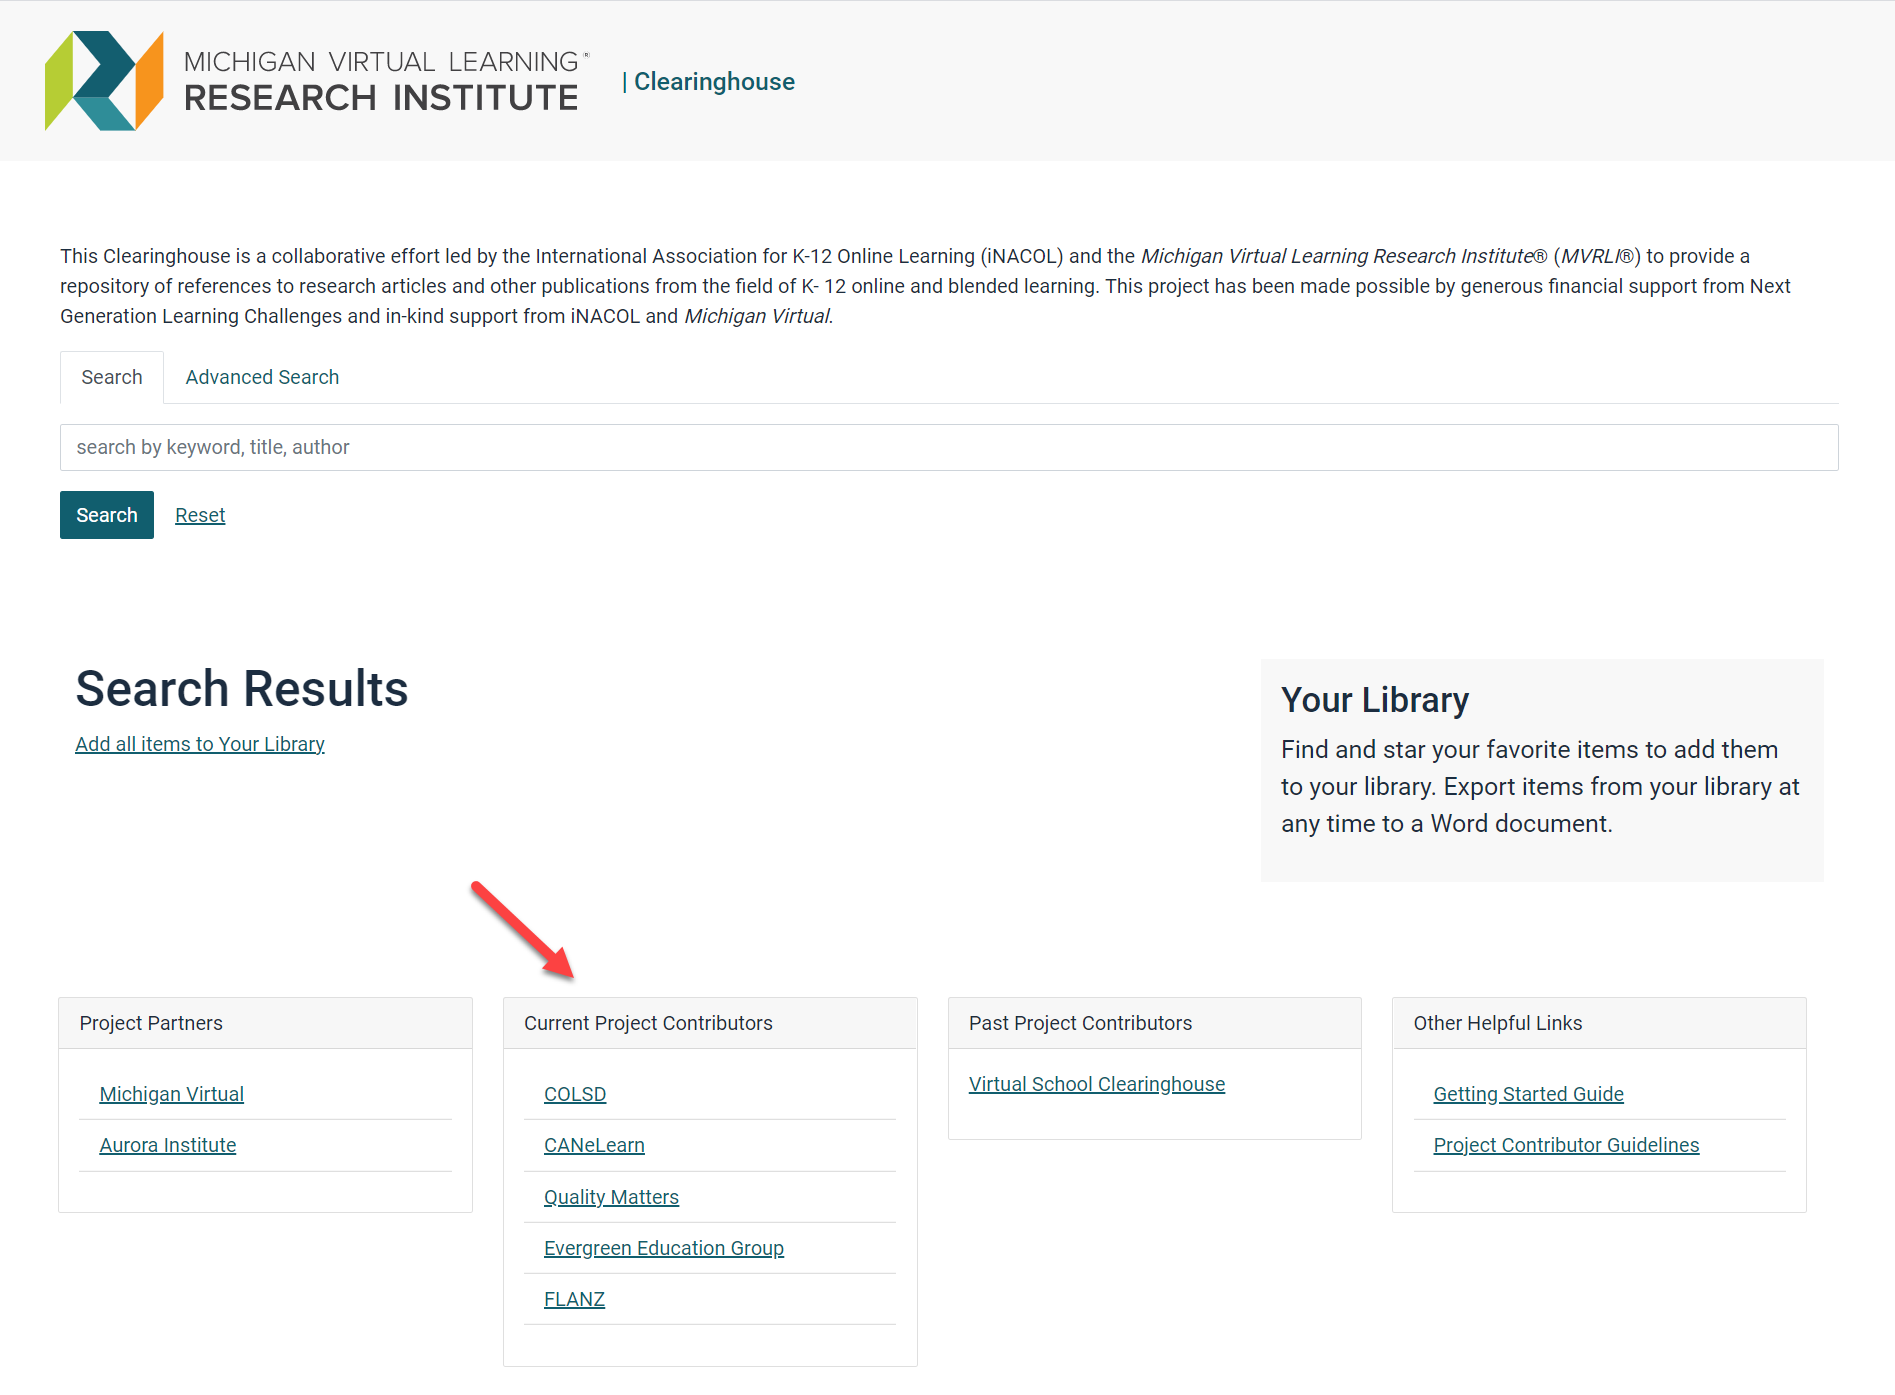 Within the Clearinghouse landing page the image shows an arrow pointing to current project contributors listed in a table at the bottom of the page.